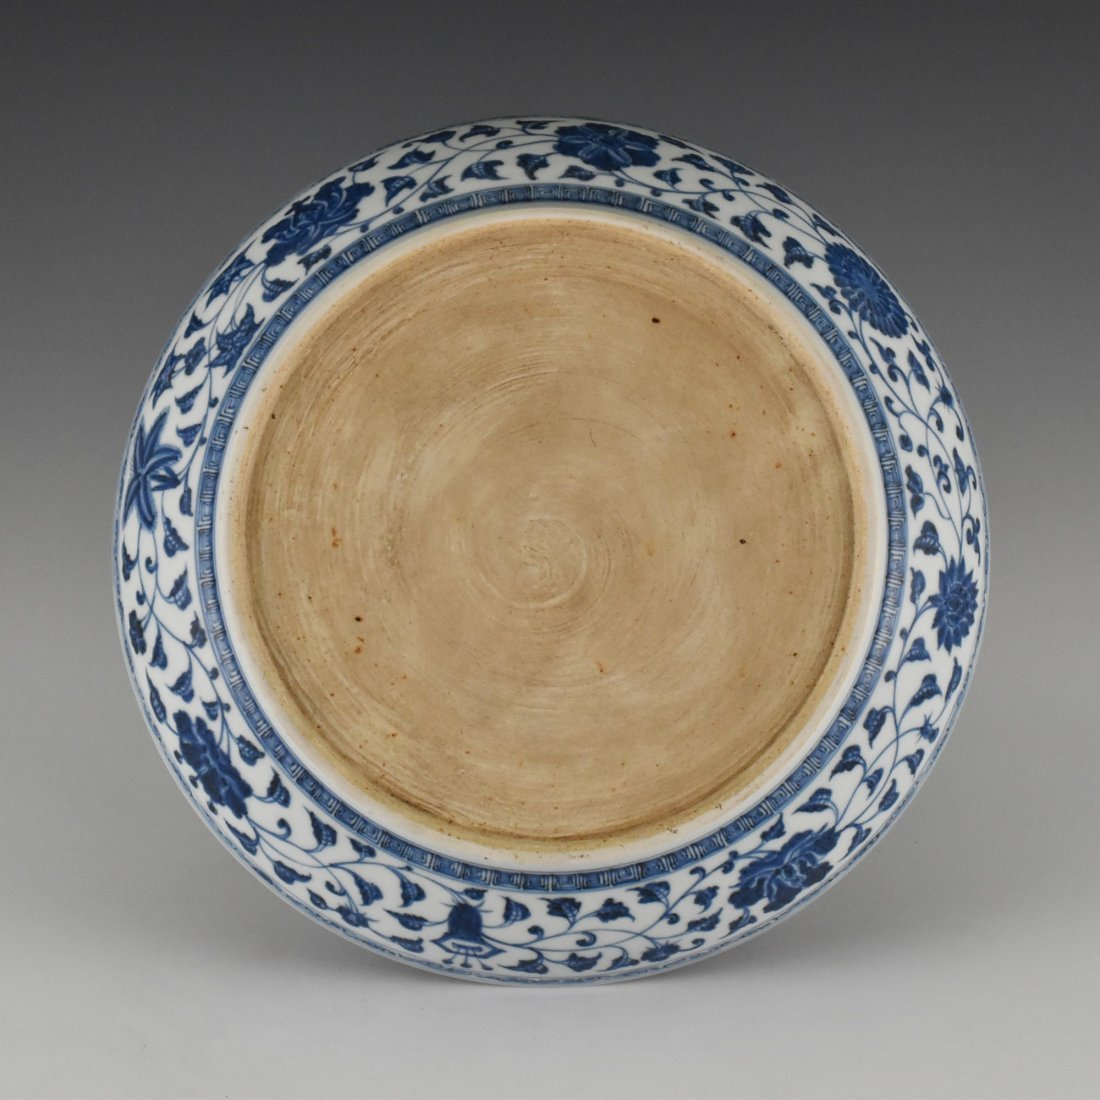 BLUE AND WHITE GOURD MOTIF PORCELAIN PLATE - 4